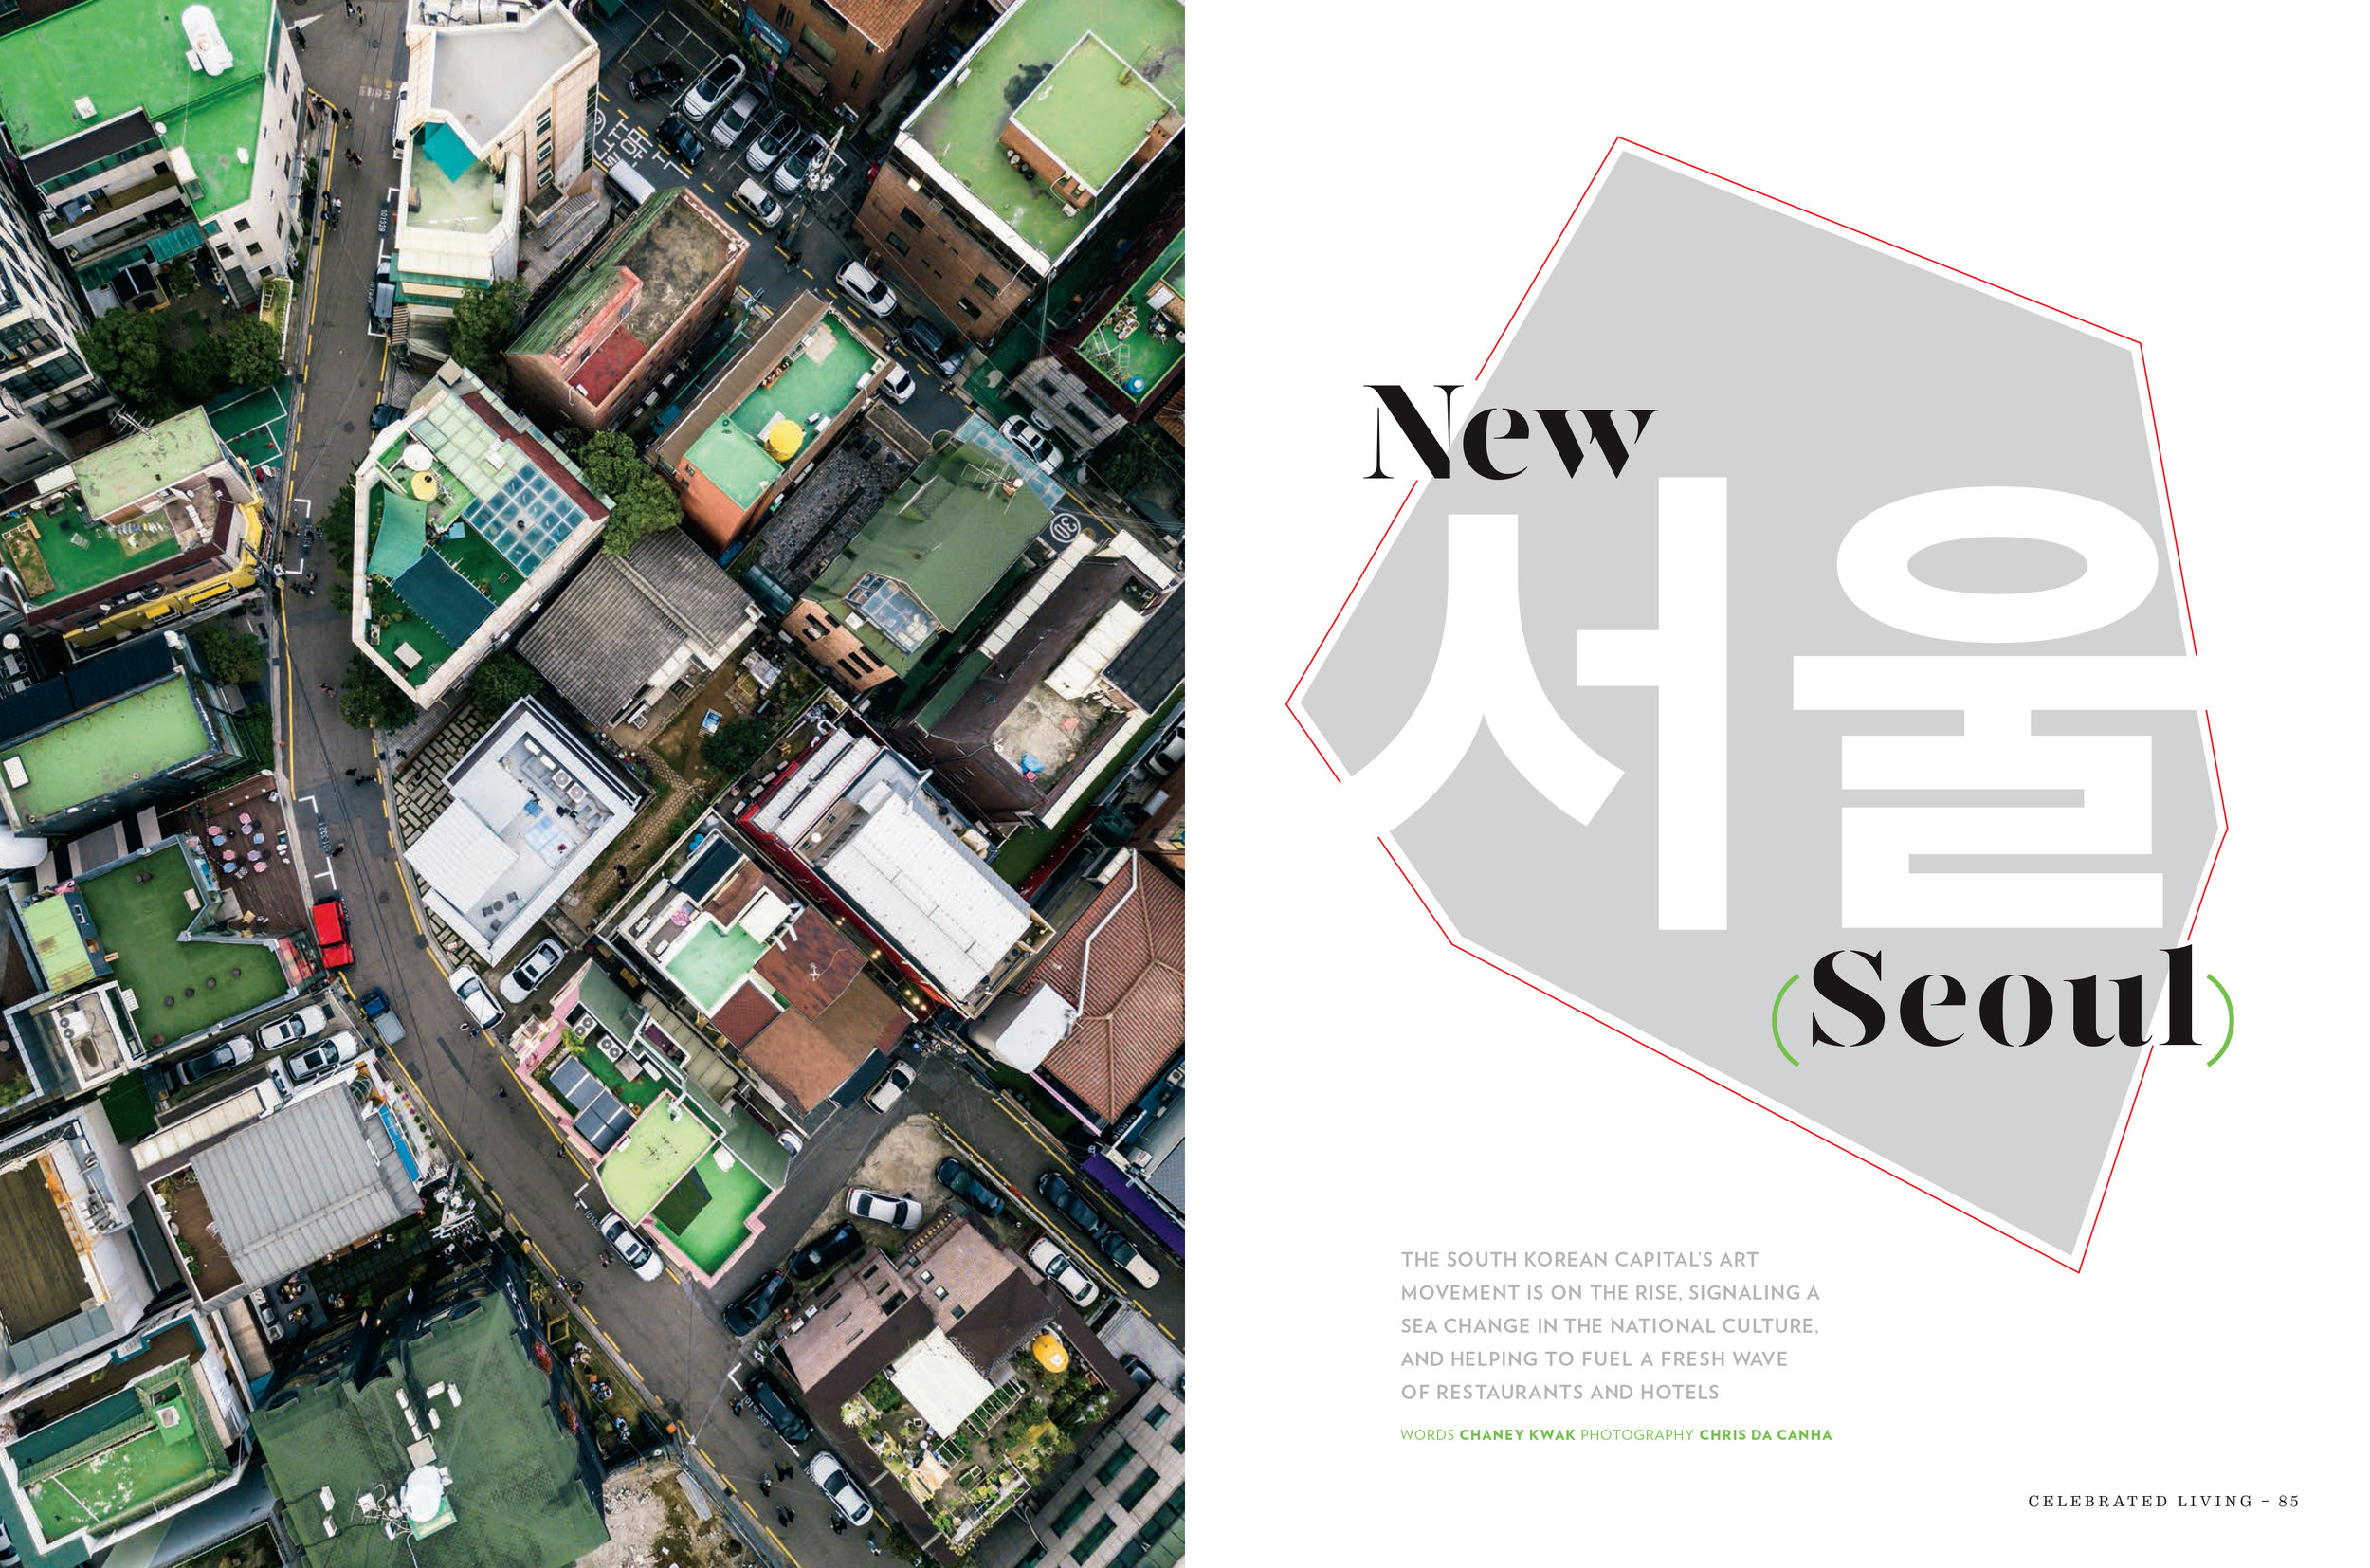 """""""NEW SEOUL"""" FEATURE FOR CELEBRATED LIVING MAGAZINE; 2018 